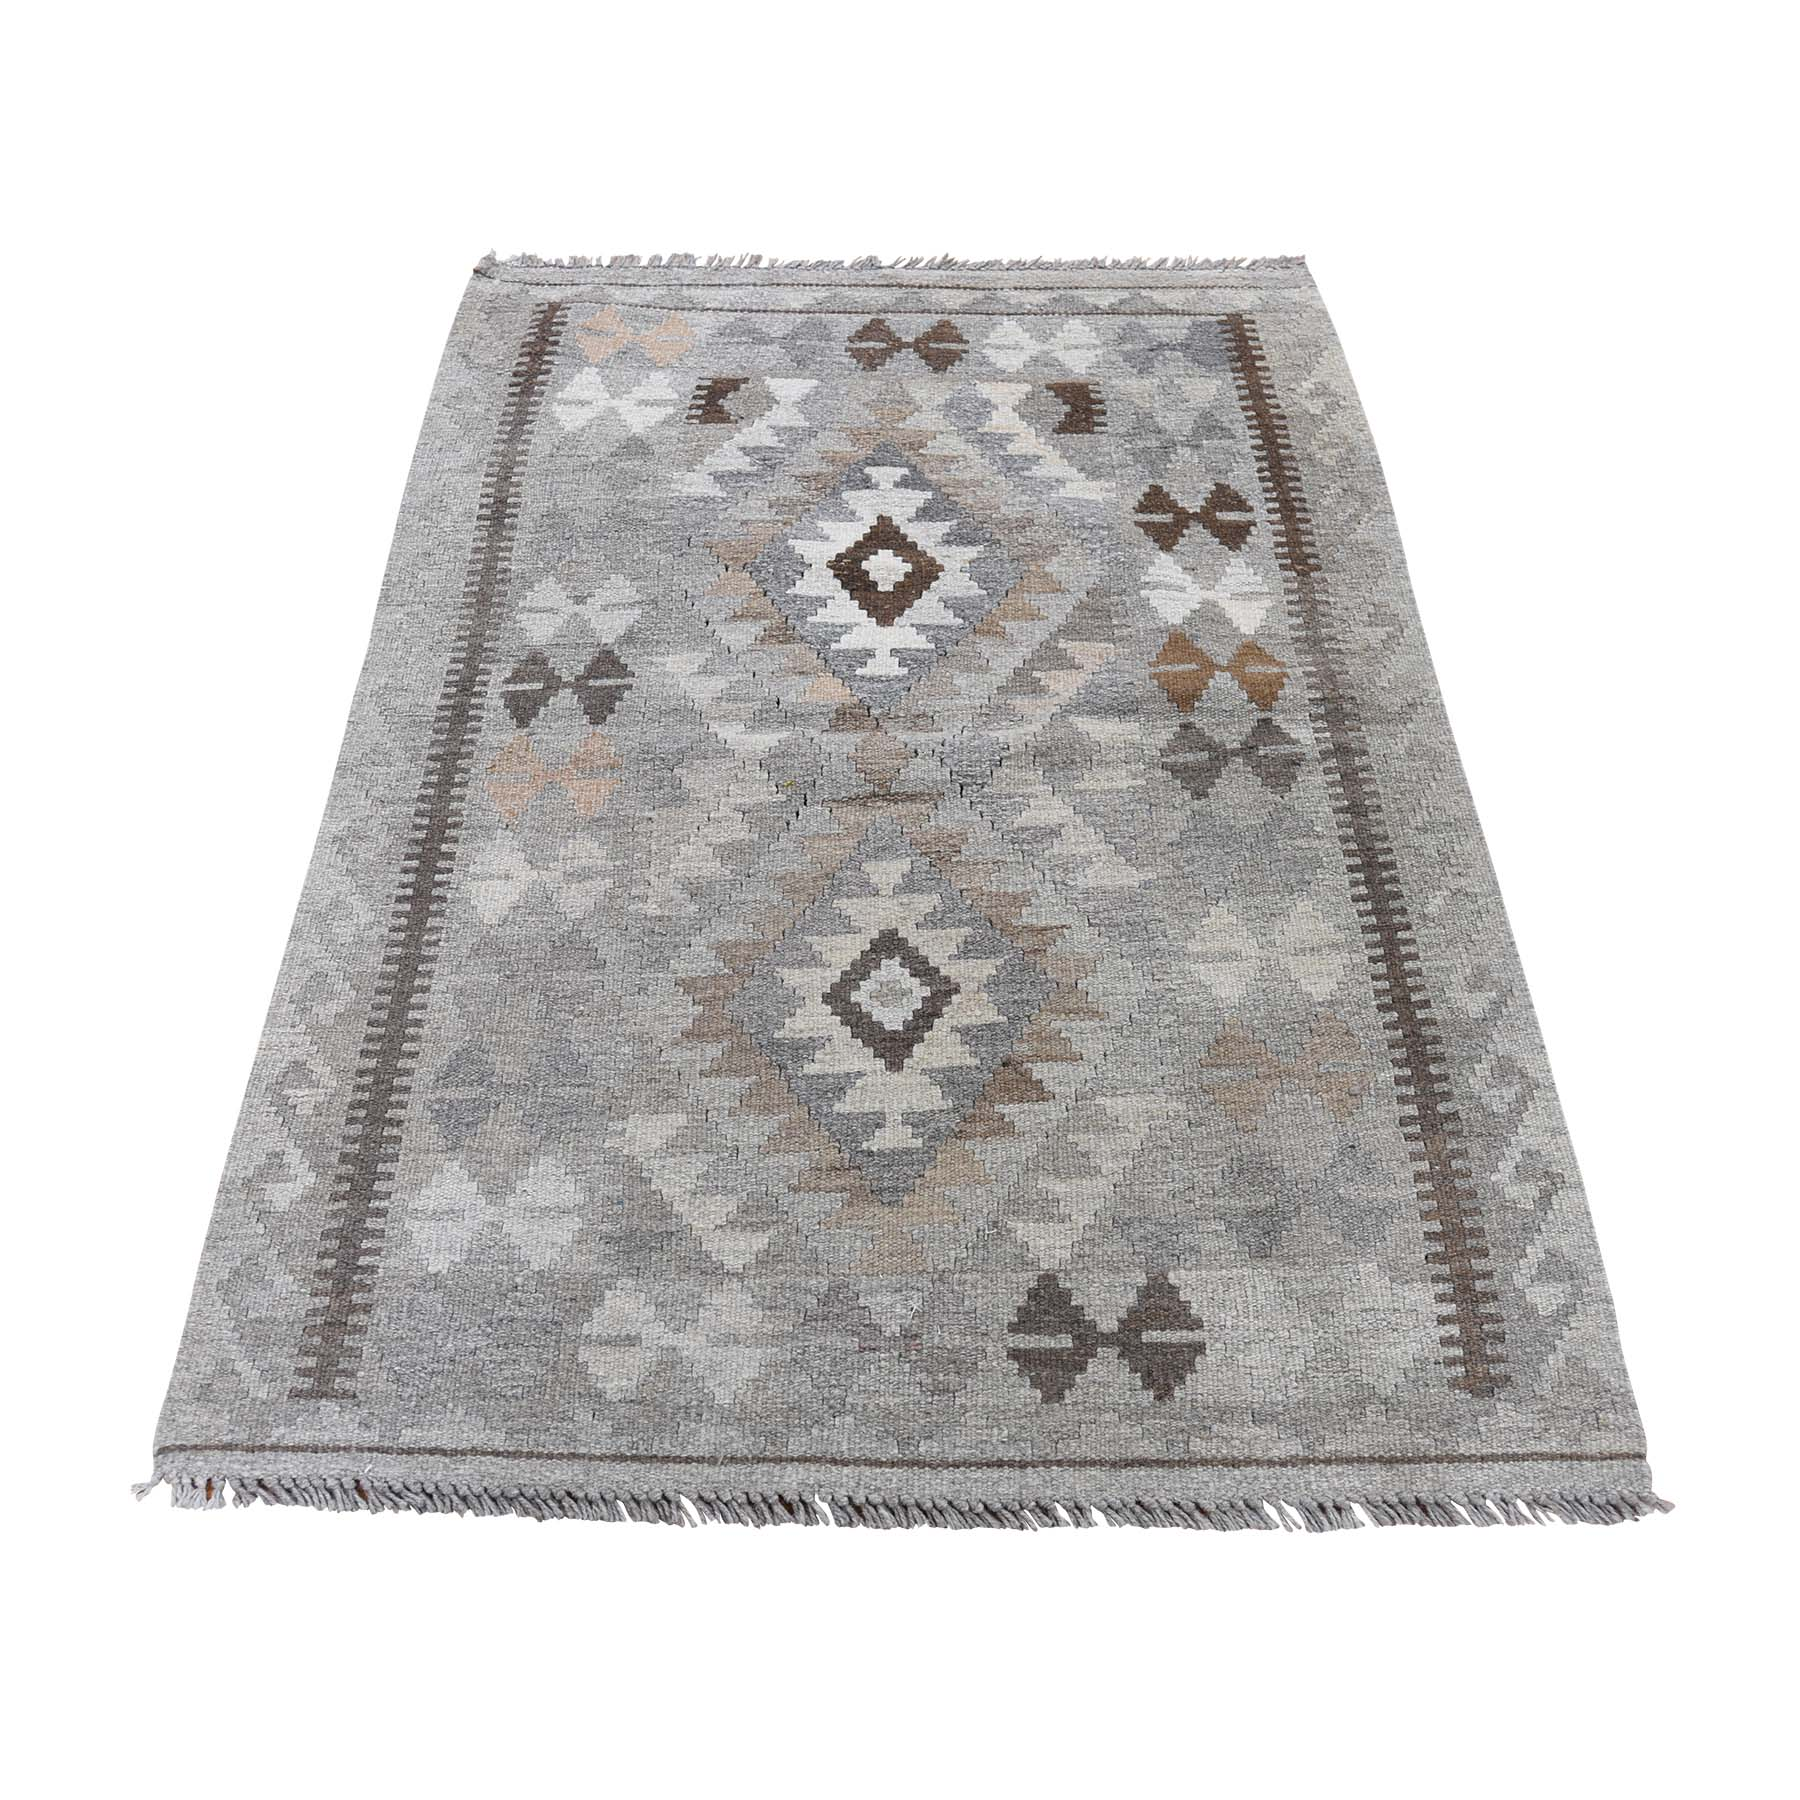 "2'7""X3'10"" Afghan Kilim Reversible Undyed Natural Wool Hand Woven Oriental Rug moaddab0"